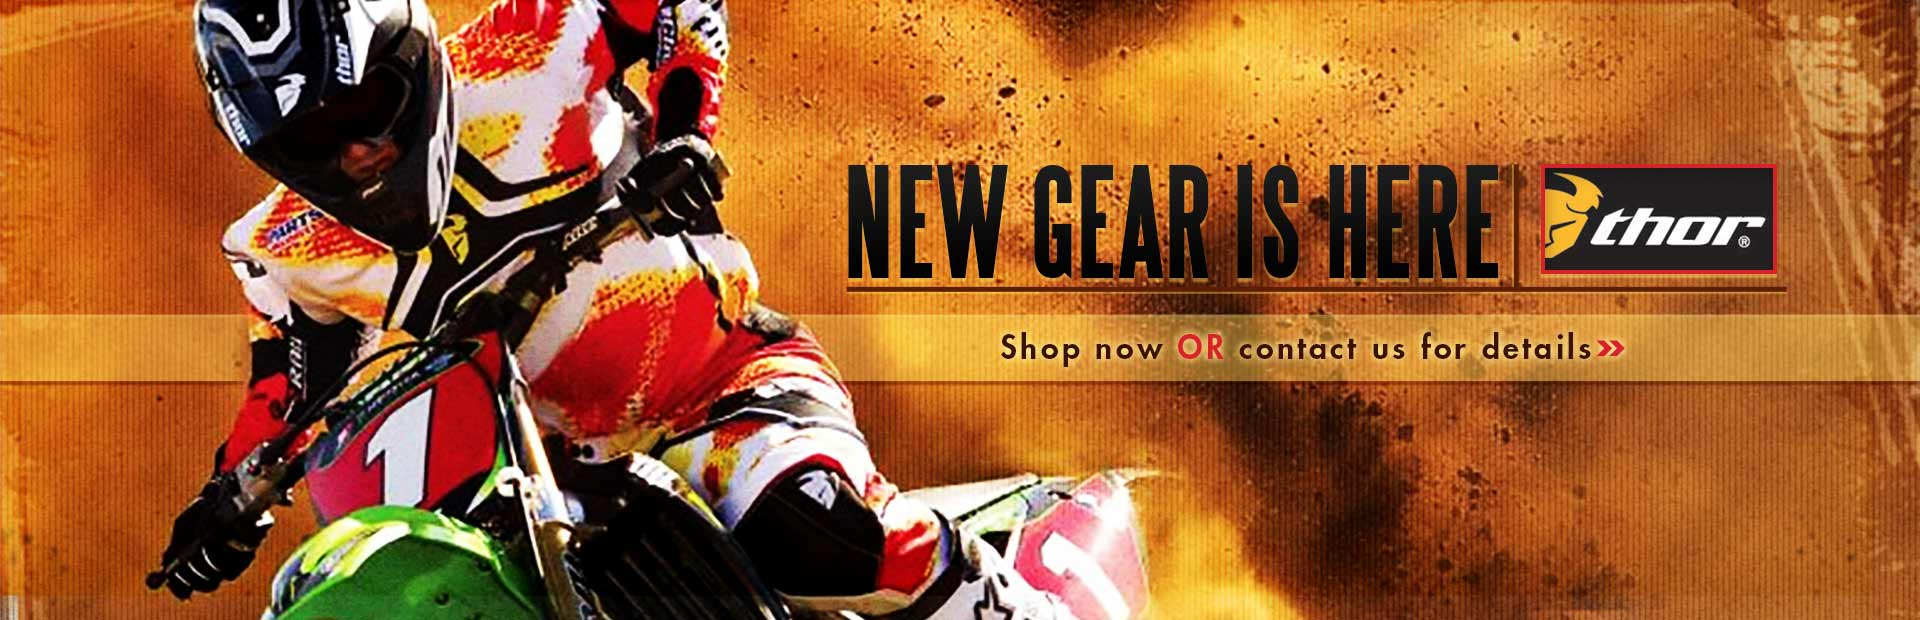 Shop for new Thor gear here or contact us for details.